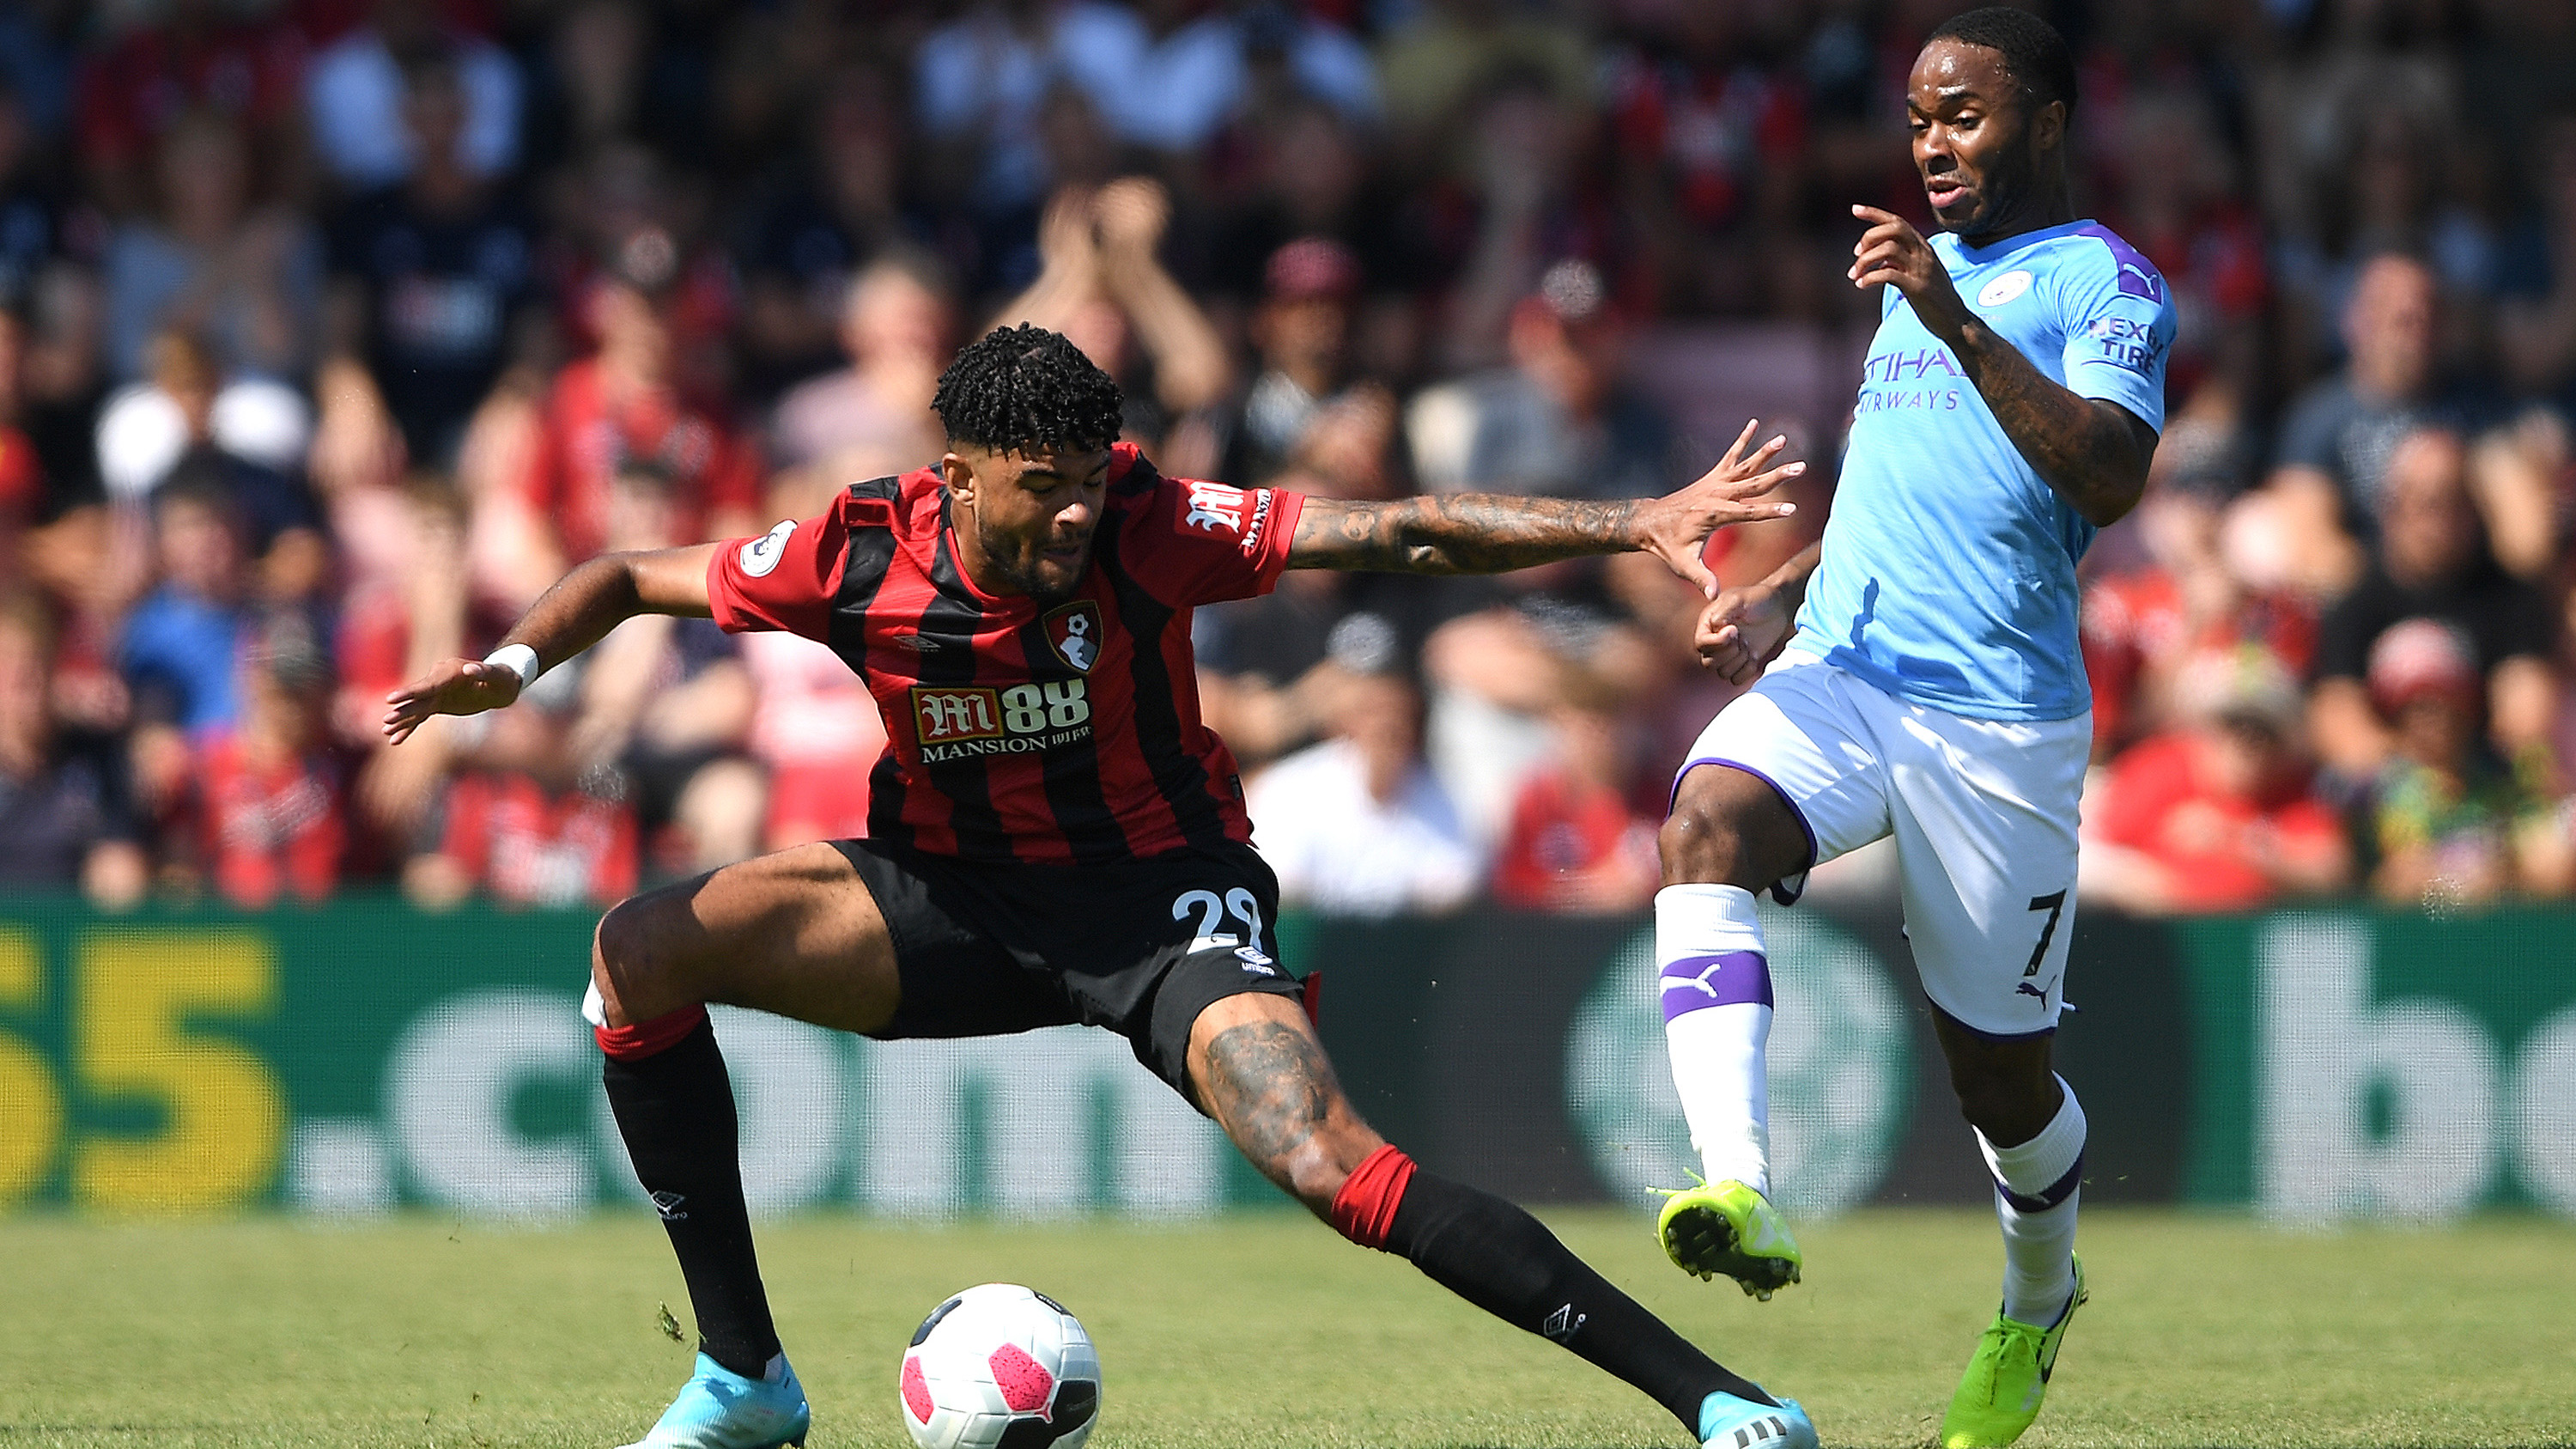 Extended highlights: Bournemouth 1, Manchester City 3